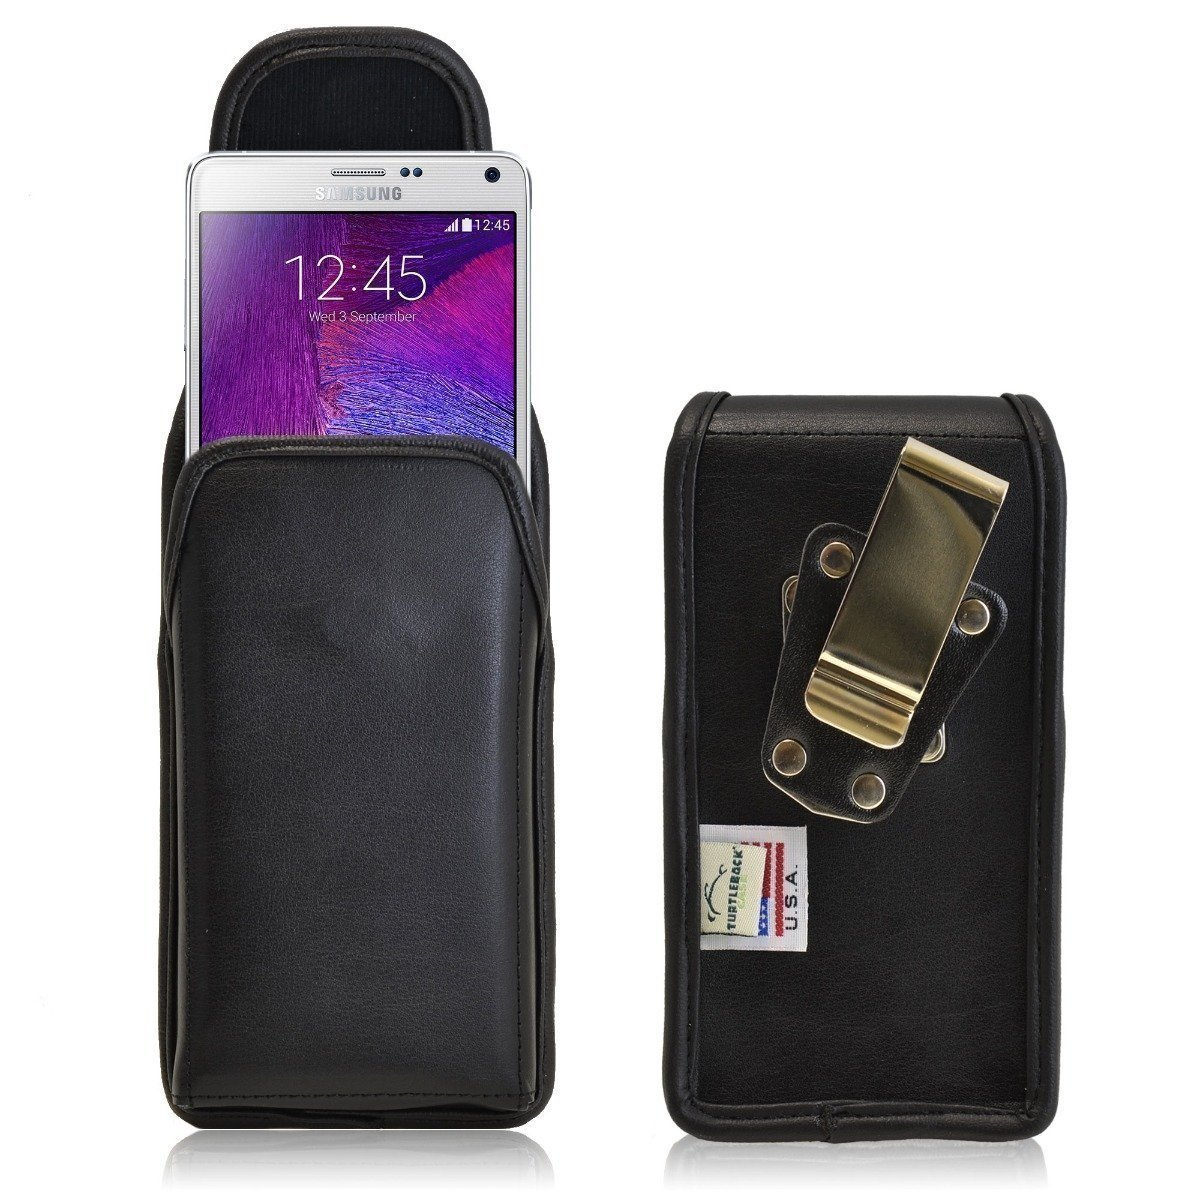 Note 4 Belt Case, Turtleback Vertical Galaxy Note 4 Holster, Rotating Belt Clip, Black Leather Pouch, Heavy Duty Made in USA